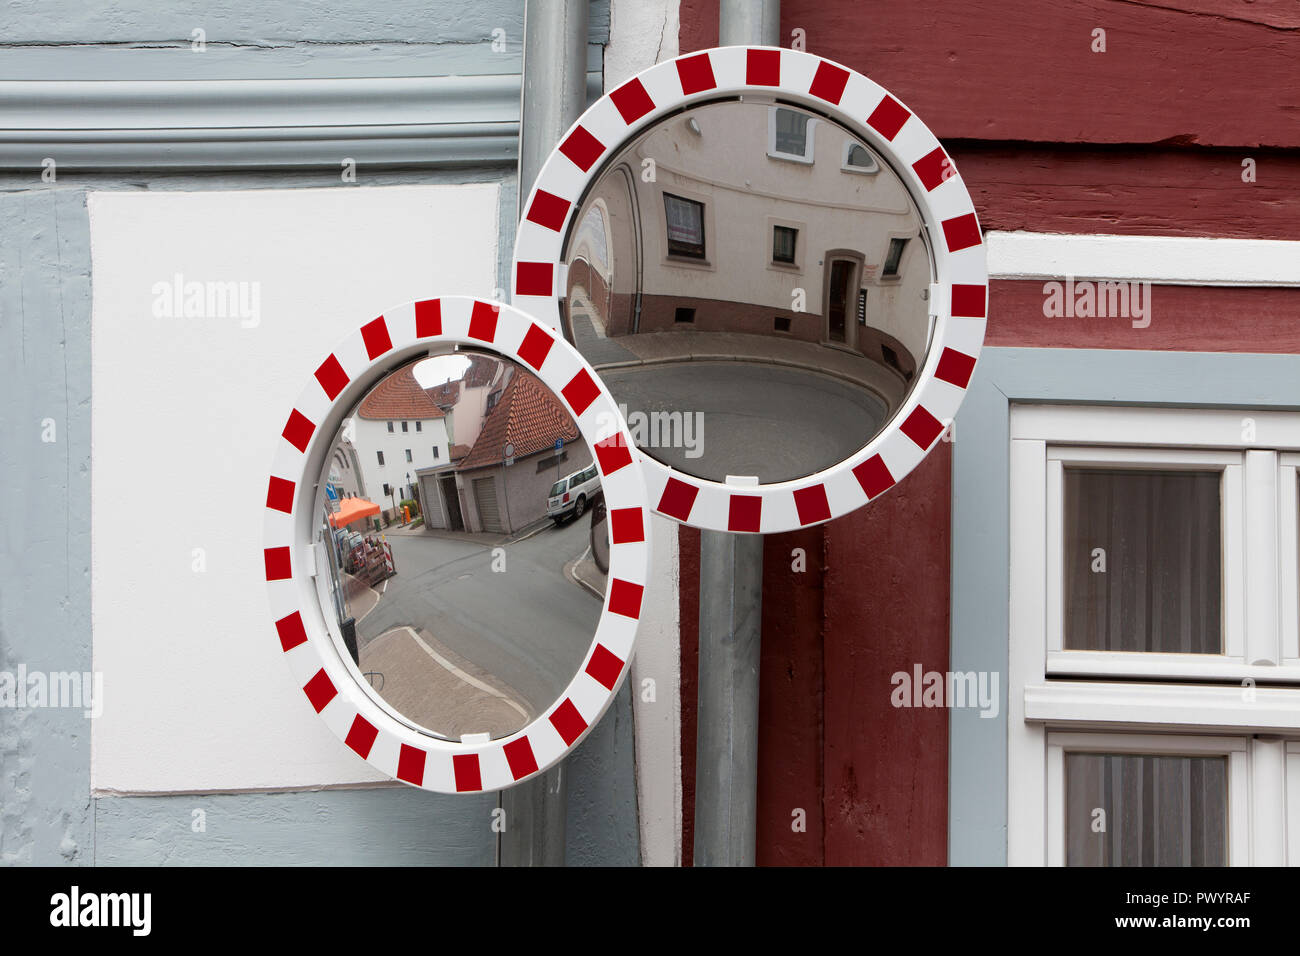 mirrors at the Hinterstraße, Duderstadt, Lower Saxony, Germany, Europe - Stock Image